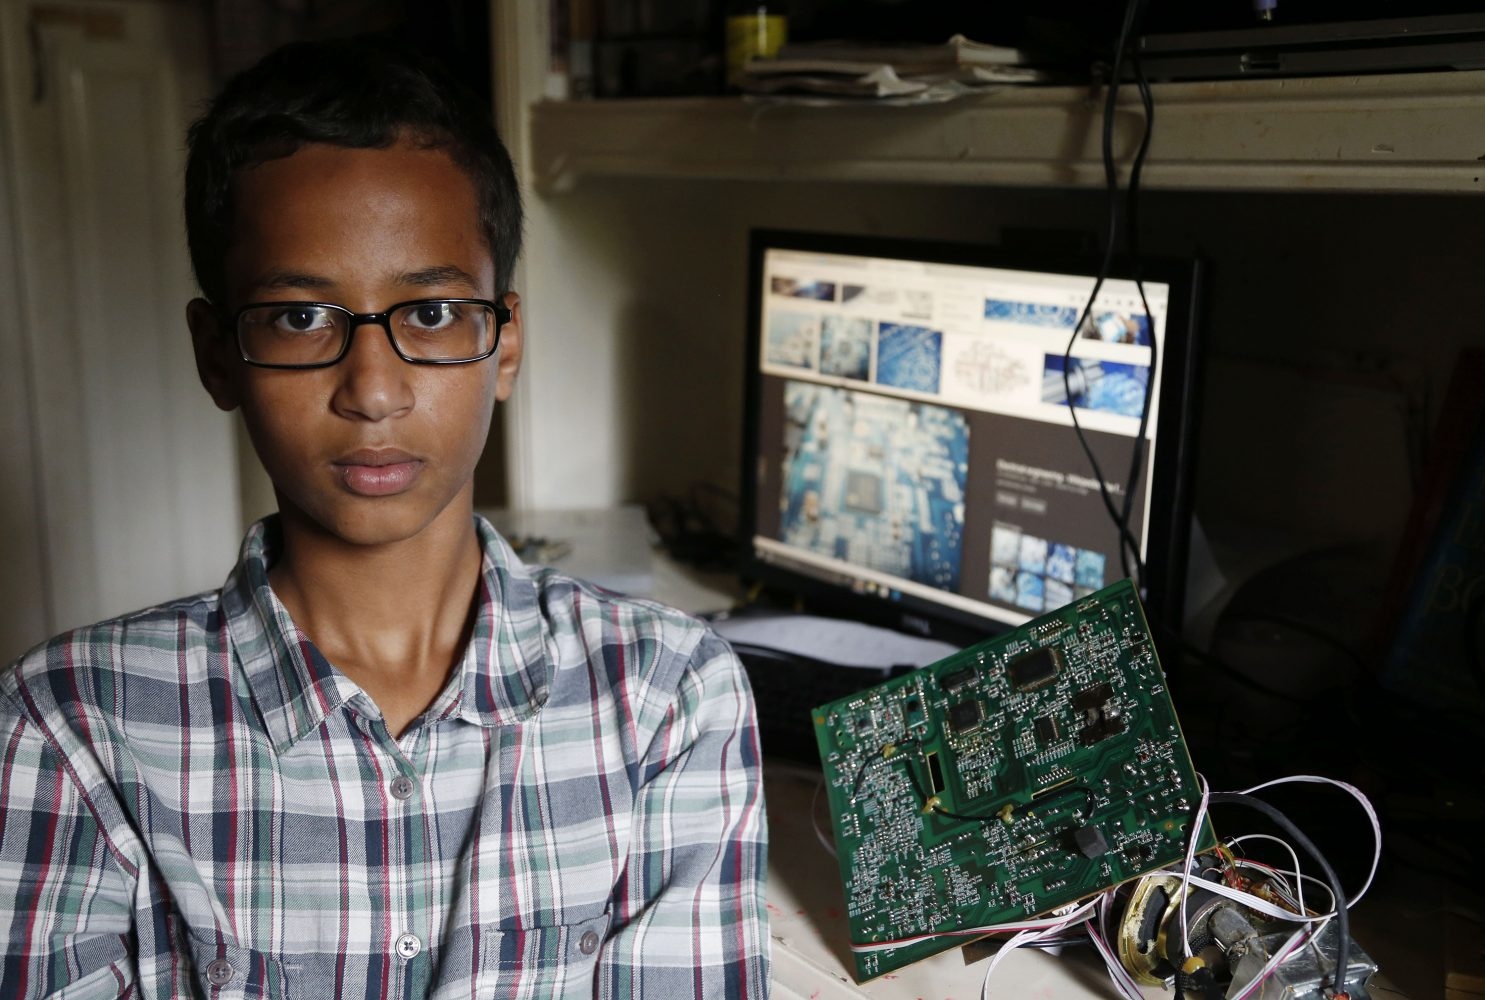 Irving MacArthur High School student Ahmed Mohamed, 14, poses for a photo at his home in Irving, Texas, on Tuesday, Sept. 15, 2015. Mohamed was arrested and interrogated by Irving Police officers on Monday after bringing a homemade clock to school. (Vernon Bryant/Dallas Morning News/TNS)